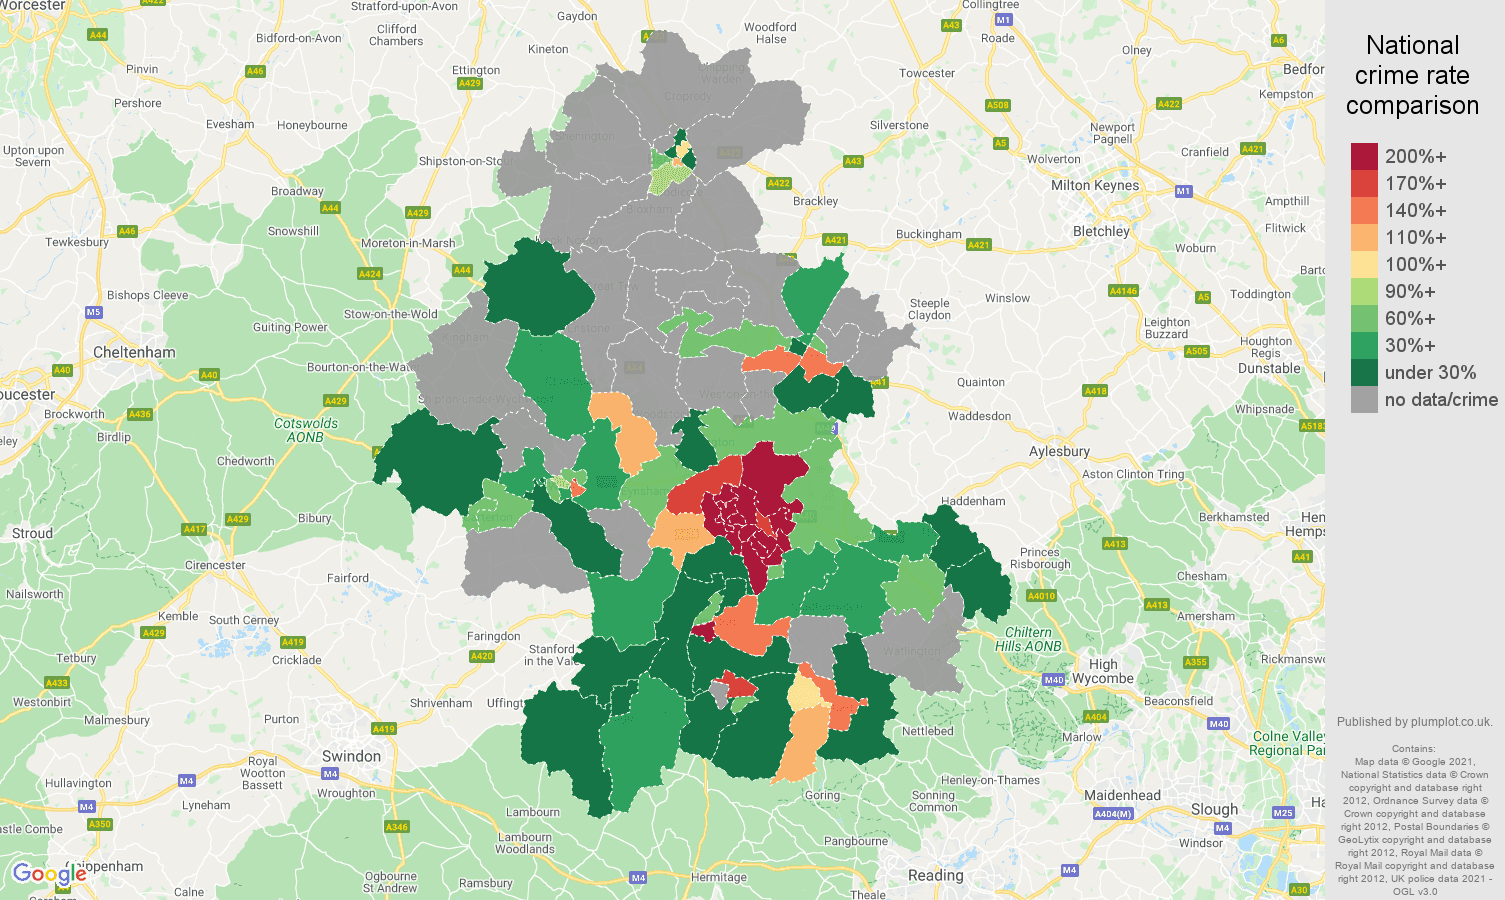 Oxford bicycle theft crime rate comparison map